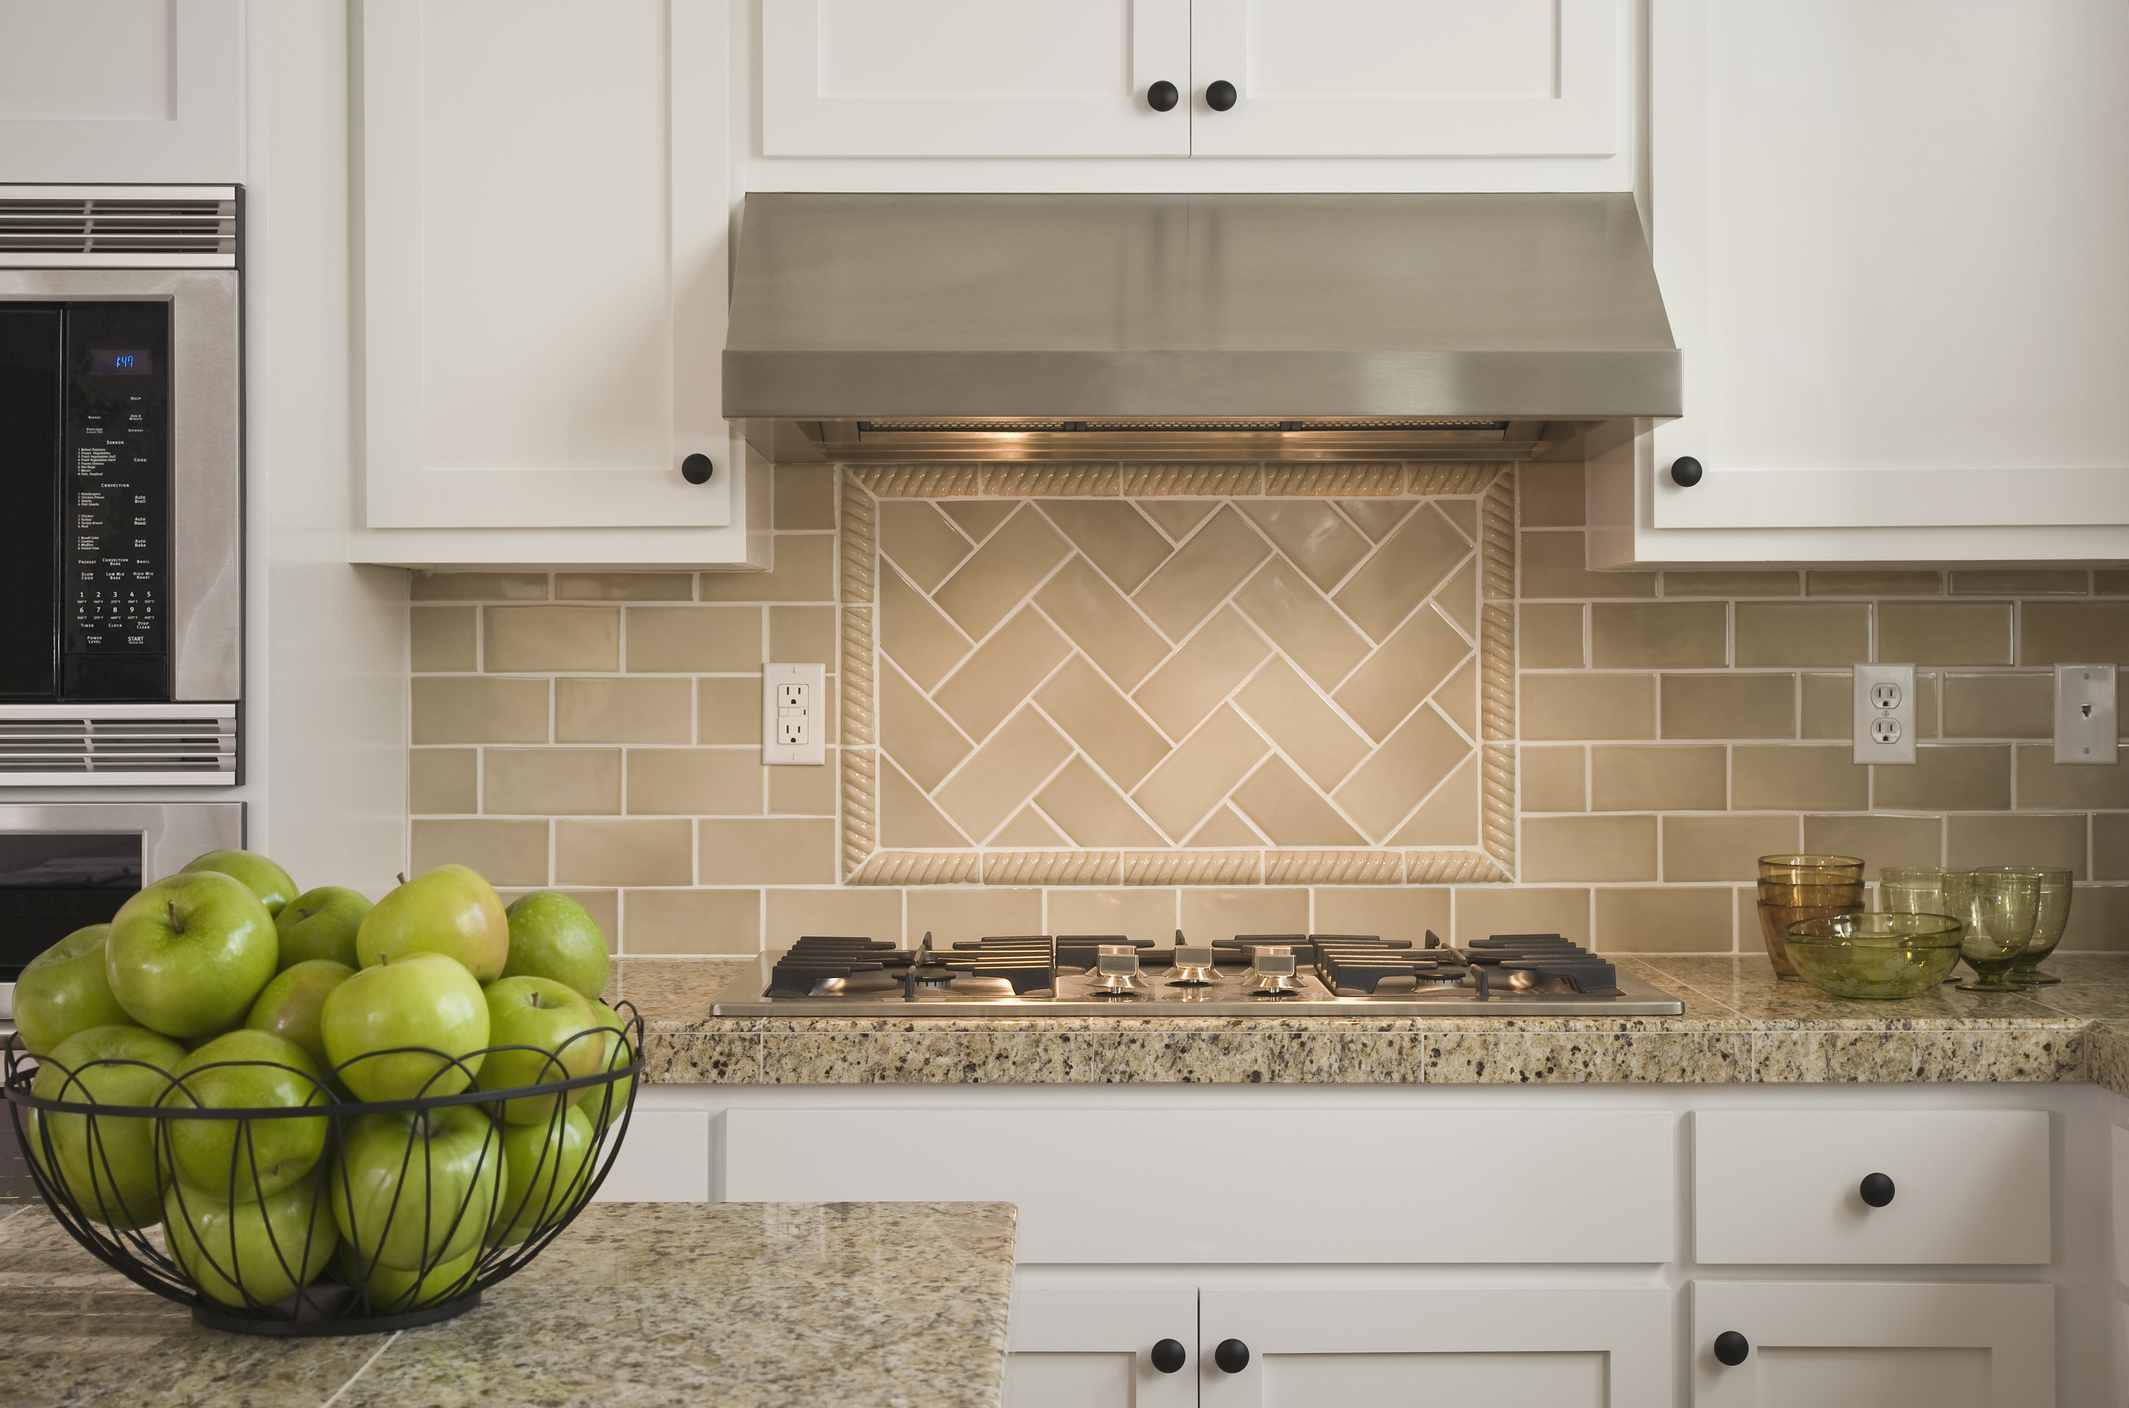 How Much Do Kitchen Countertops Cost?